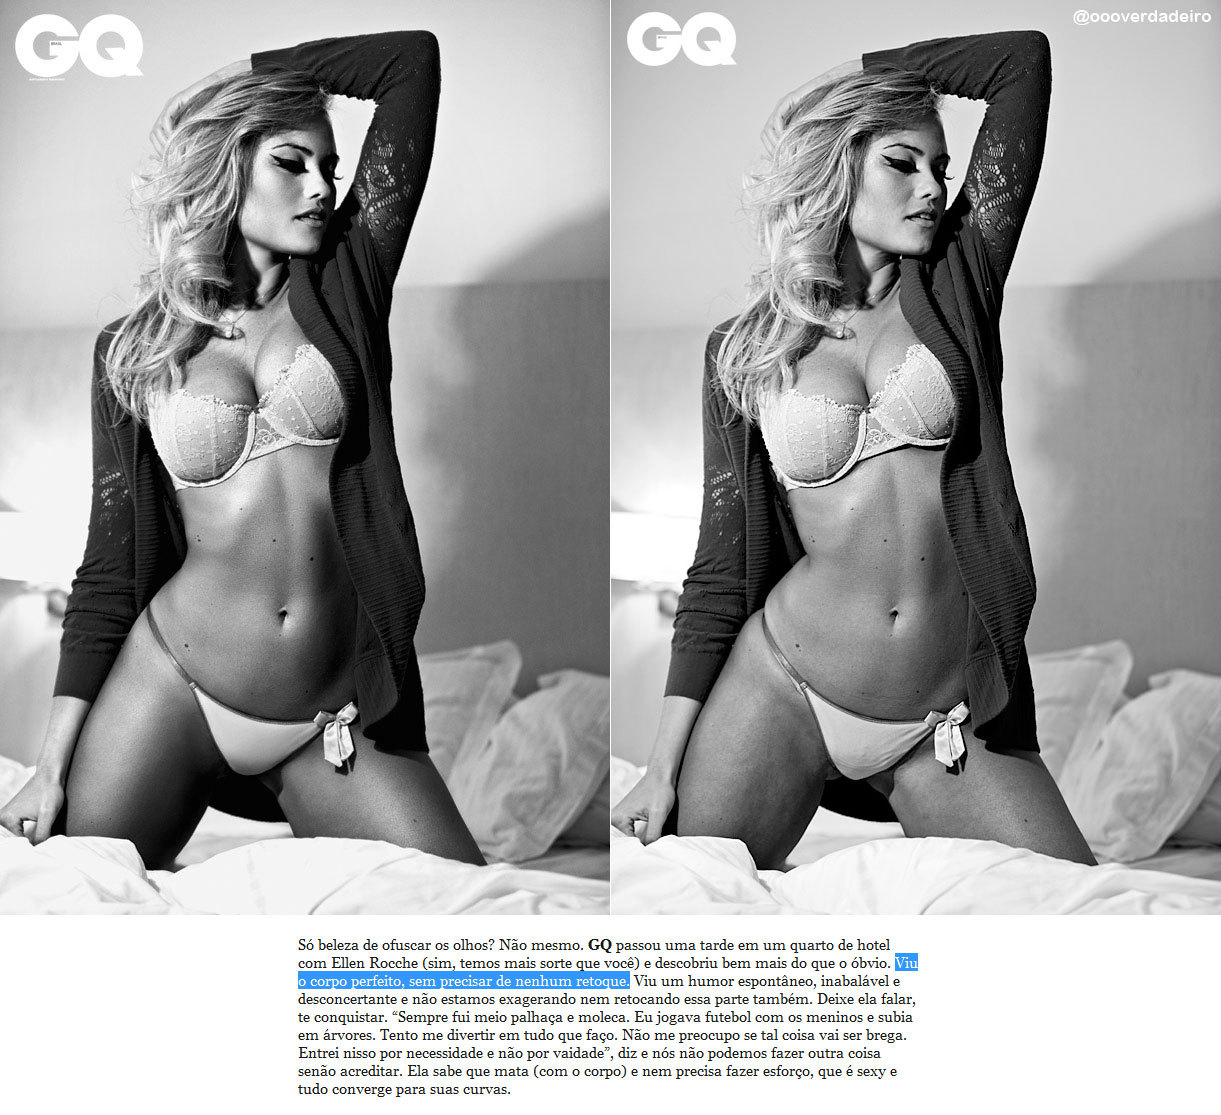 GQ, Ellen Rocche e o Photoshop…